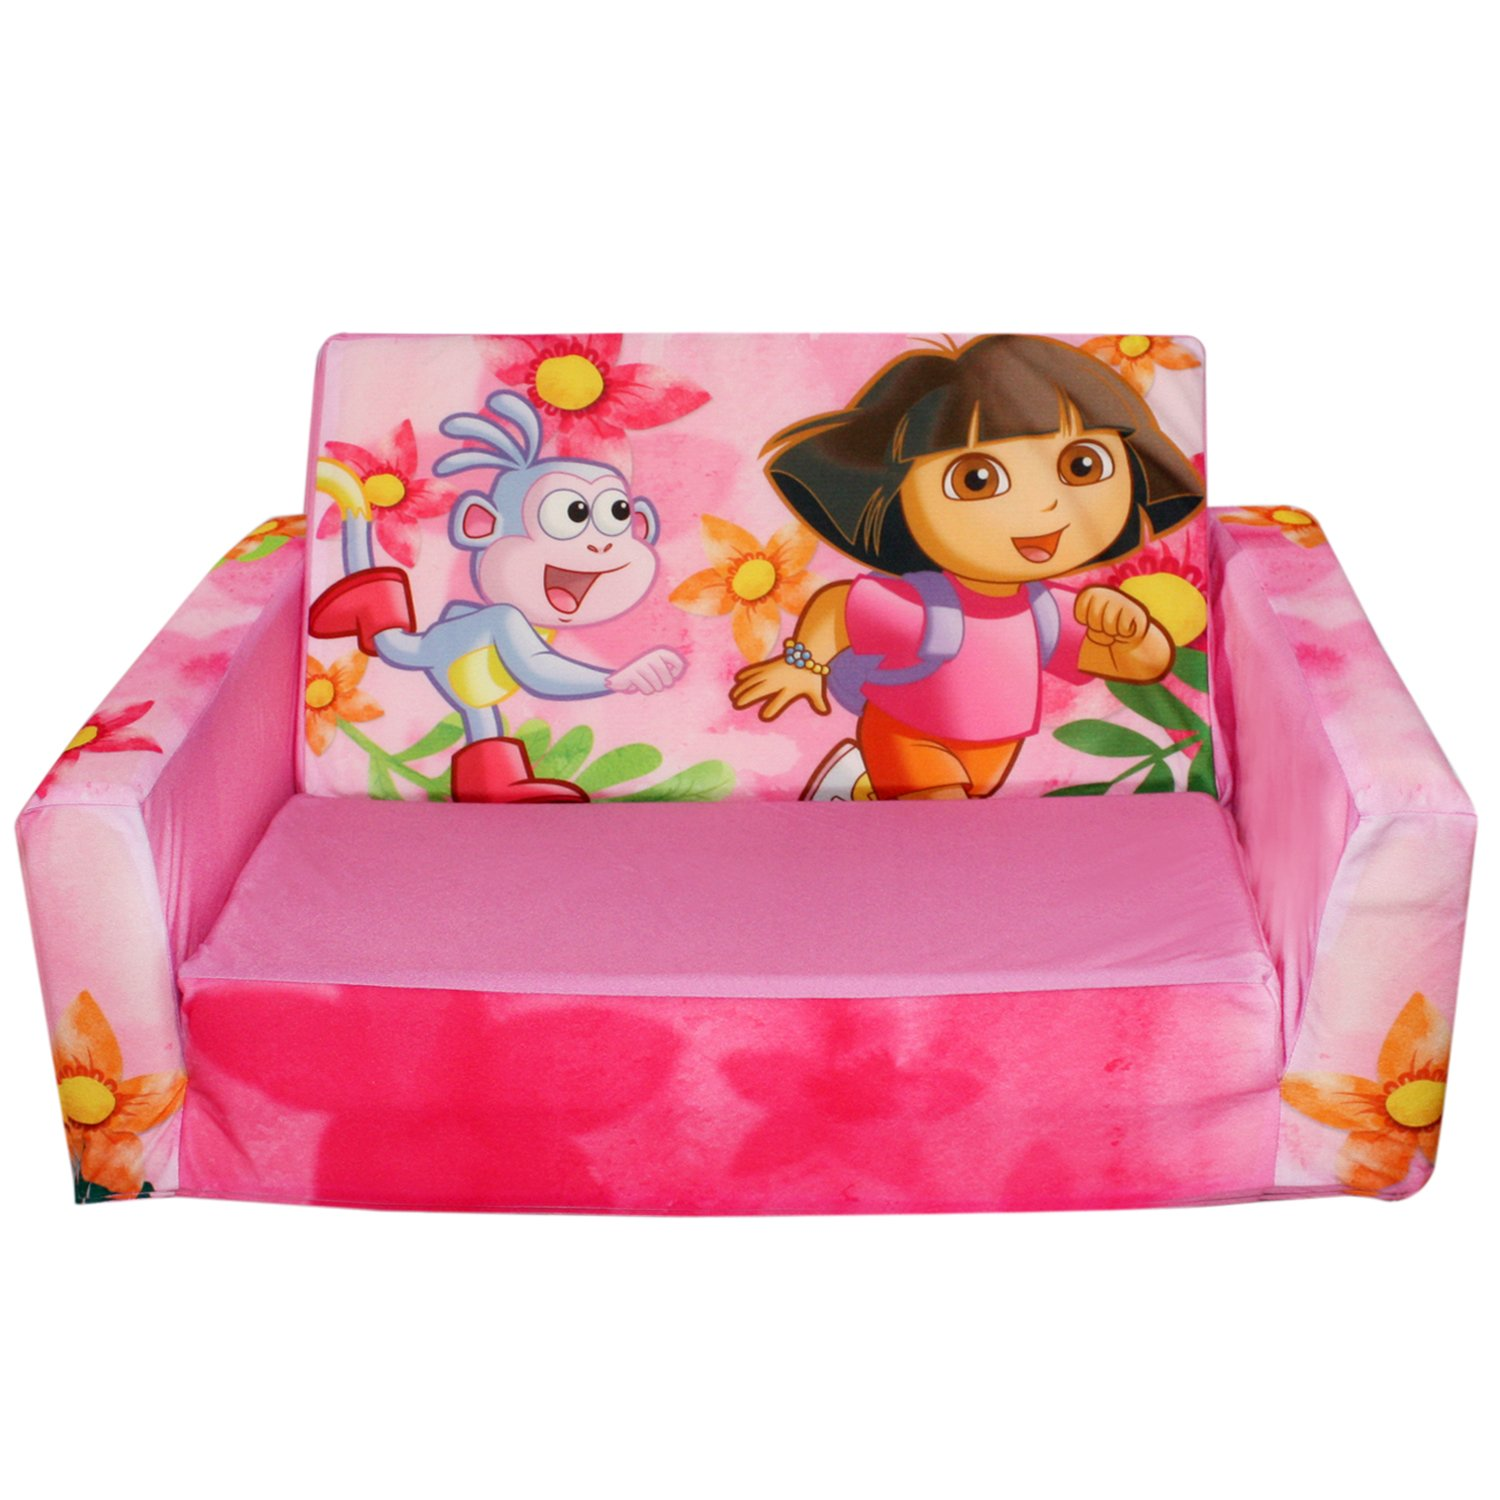 Childrens Sofa & Chairs Sets: Dora the Explorer Pink Flip Sofa/Couch